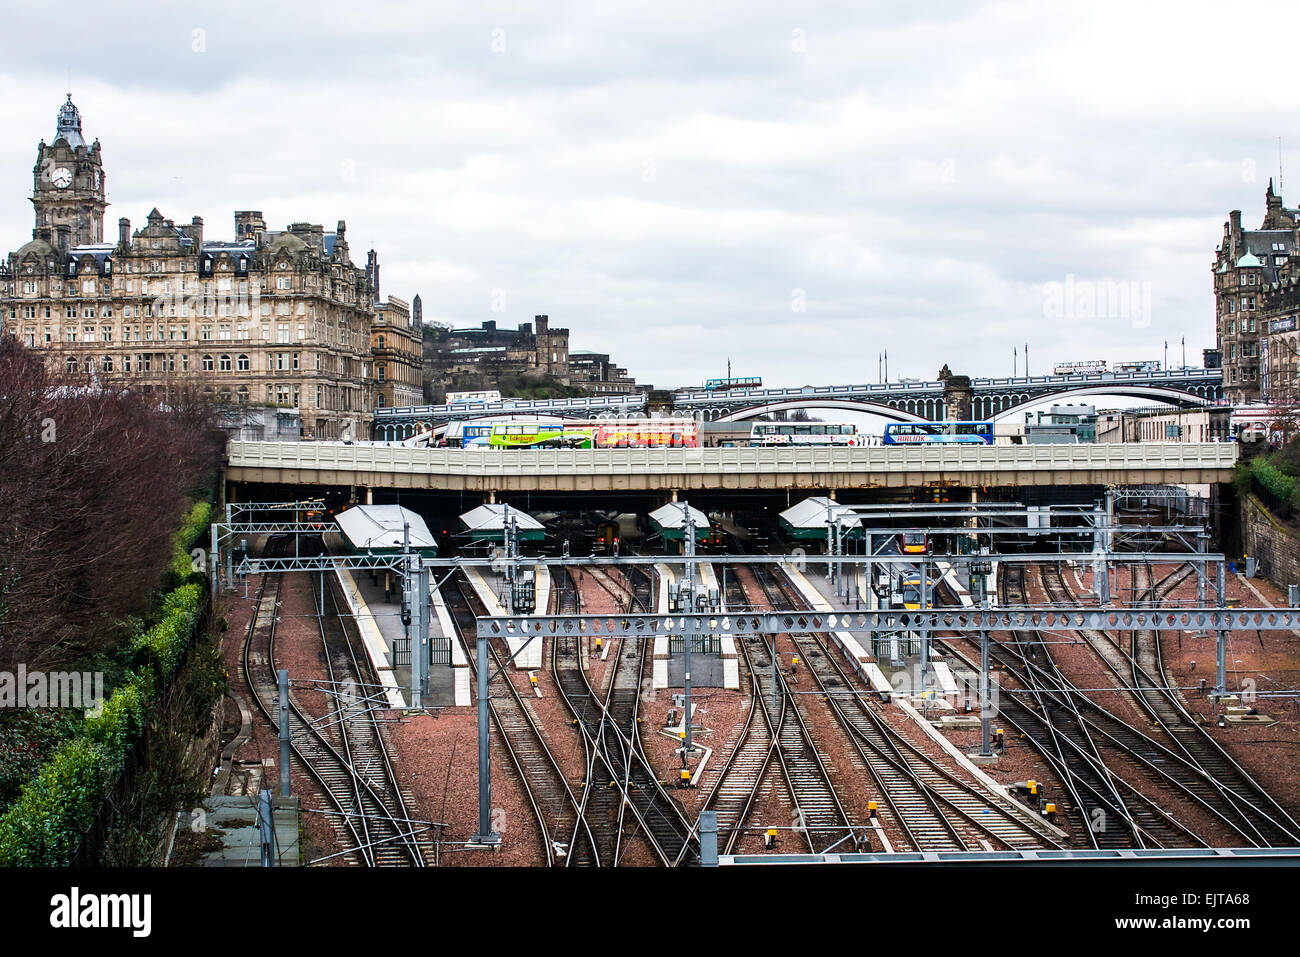 A view of the cluster of train lines running under the bridges and into the train station in Edinburgh, Scotland. - Stock Image